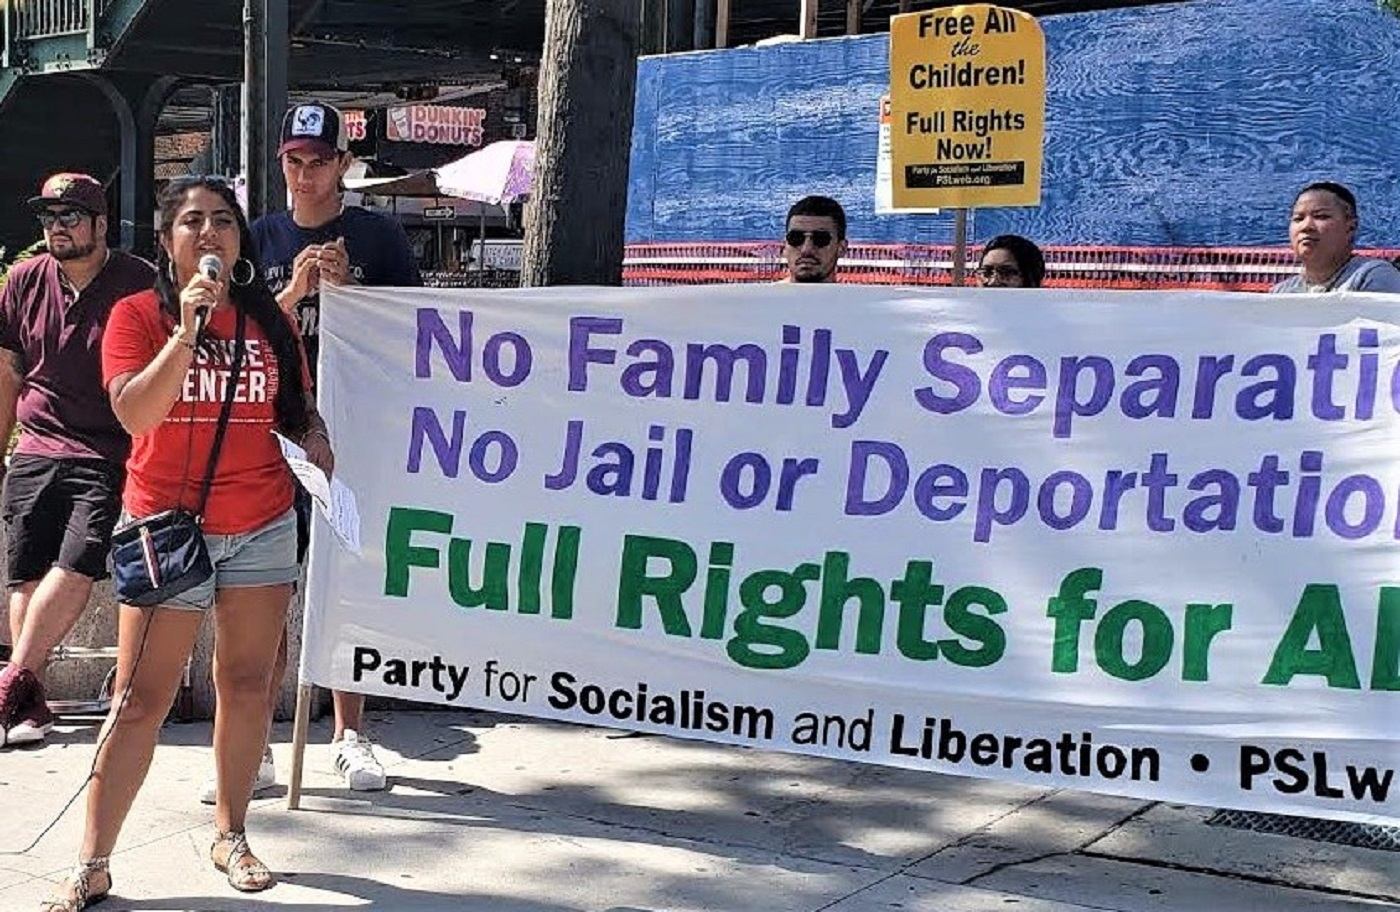 """Liberation photo. Activists hold a banner reading: """"No family separation! No jail or deportation! Full Rights for All! Party for Socialilsm and Liberation. A woman holds a microphone."""